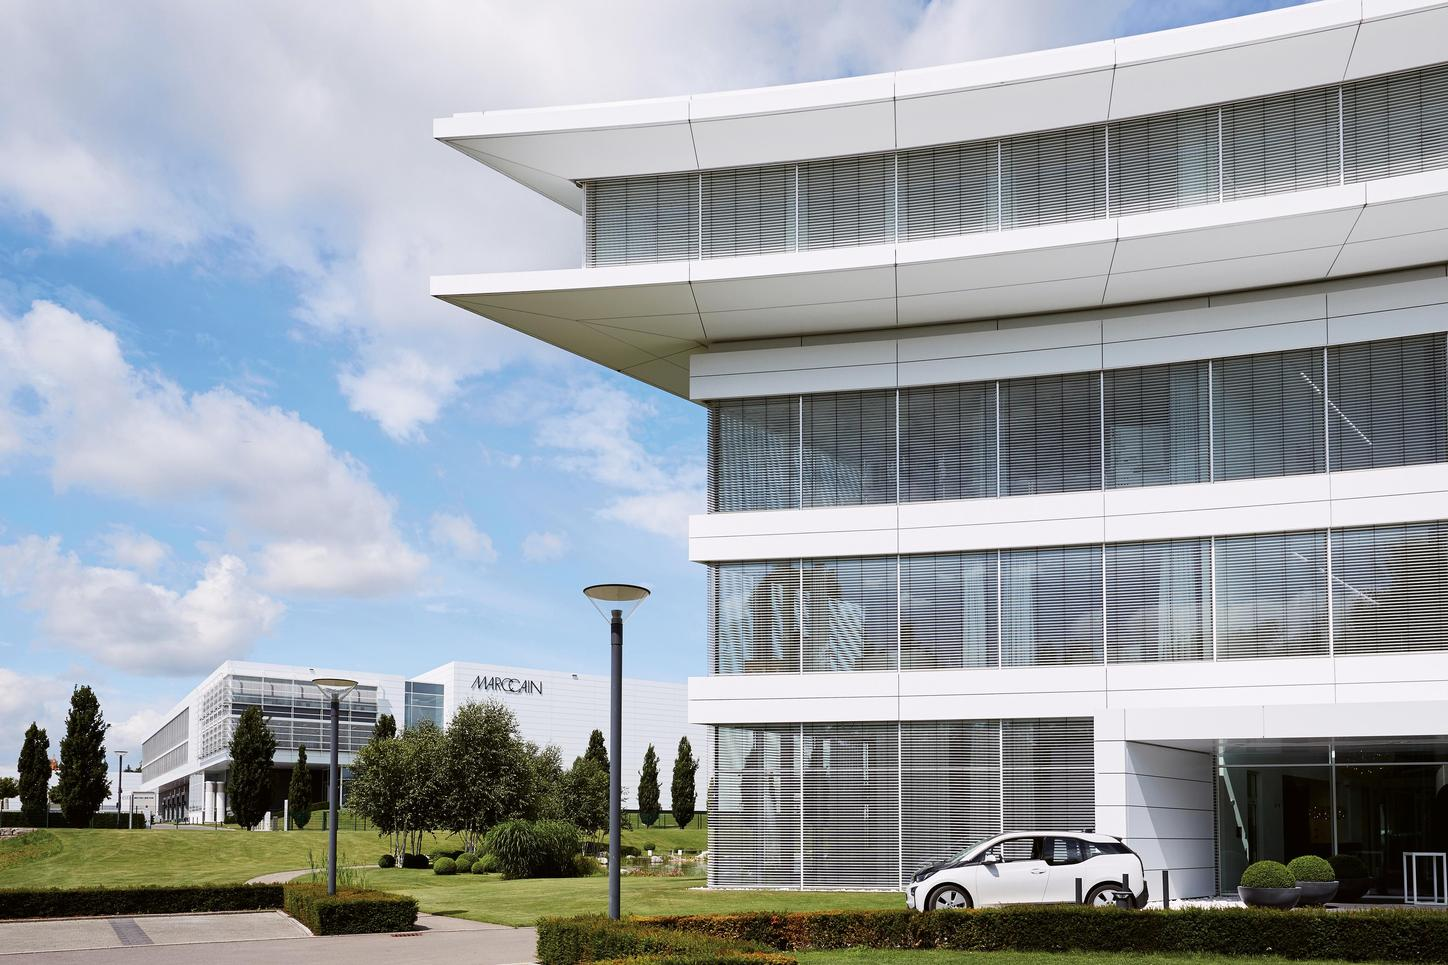 The picture shows the production and administration building of Marc Cain GmbH.